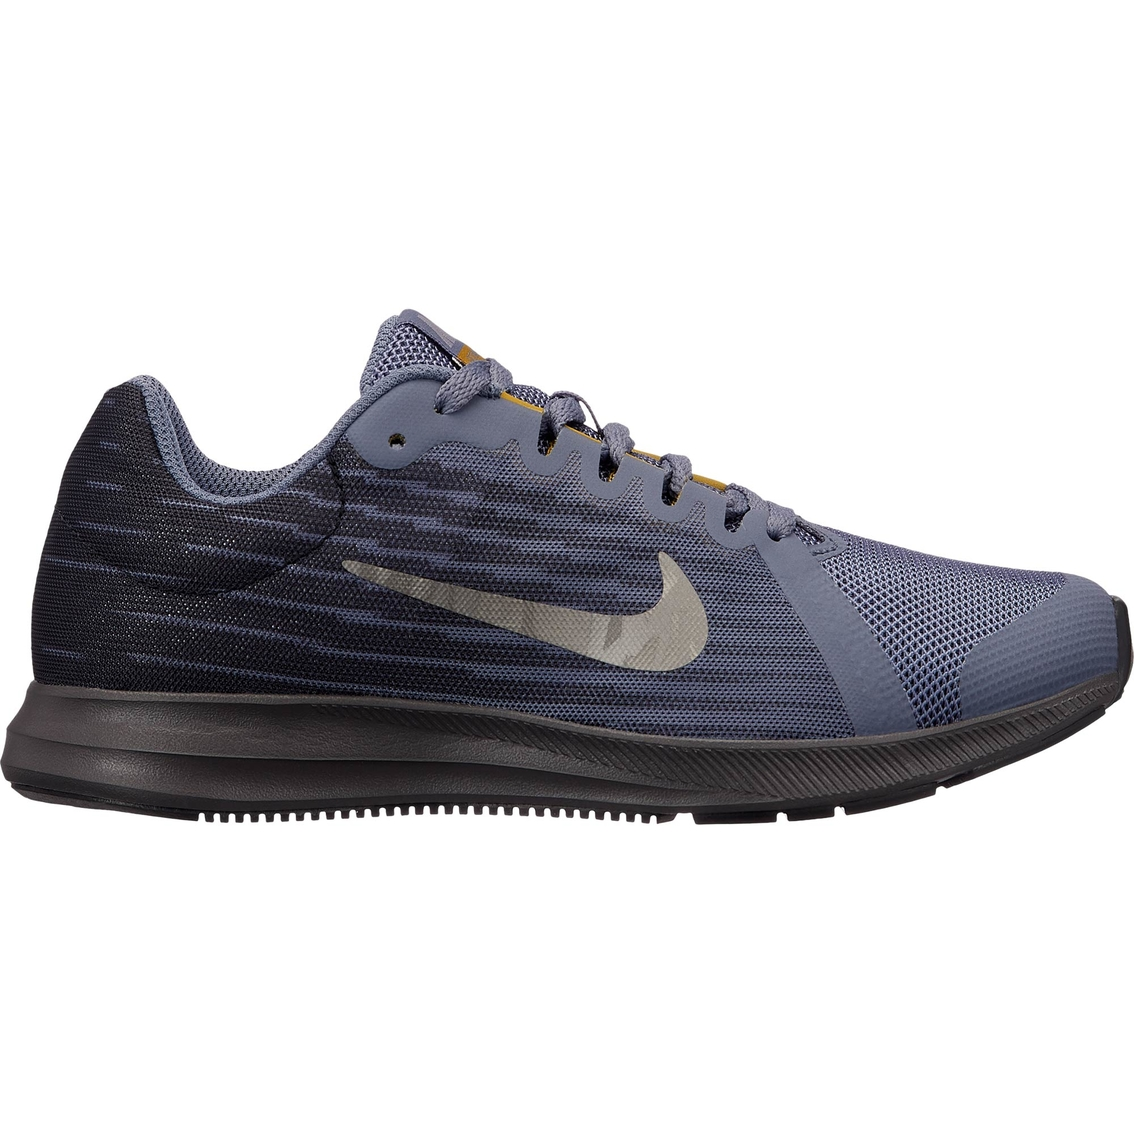 8f7cfa9fb73c71 Nike Grade School Boys Nike Downshifter 8 Running Shoes